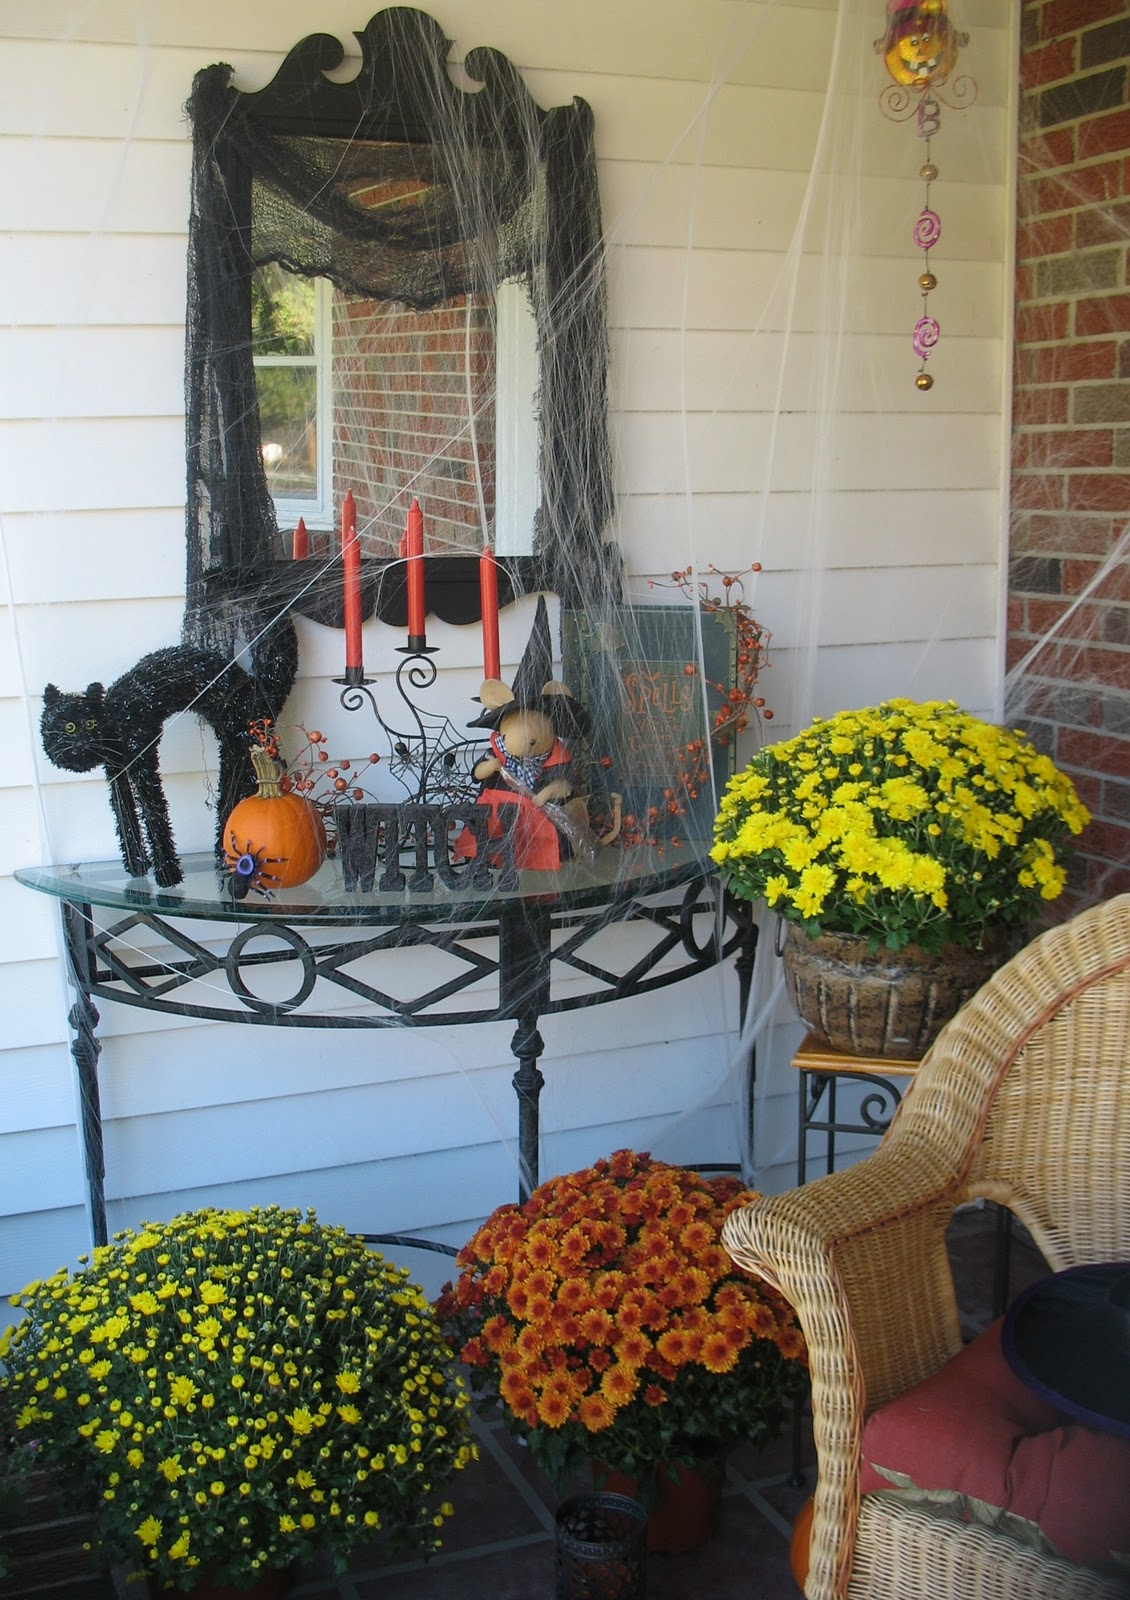 21 Rosemary Lane Decorating The Front Porch For Halloween